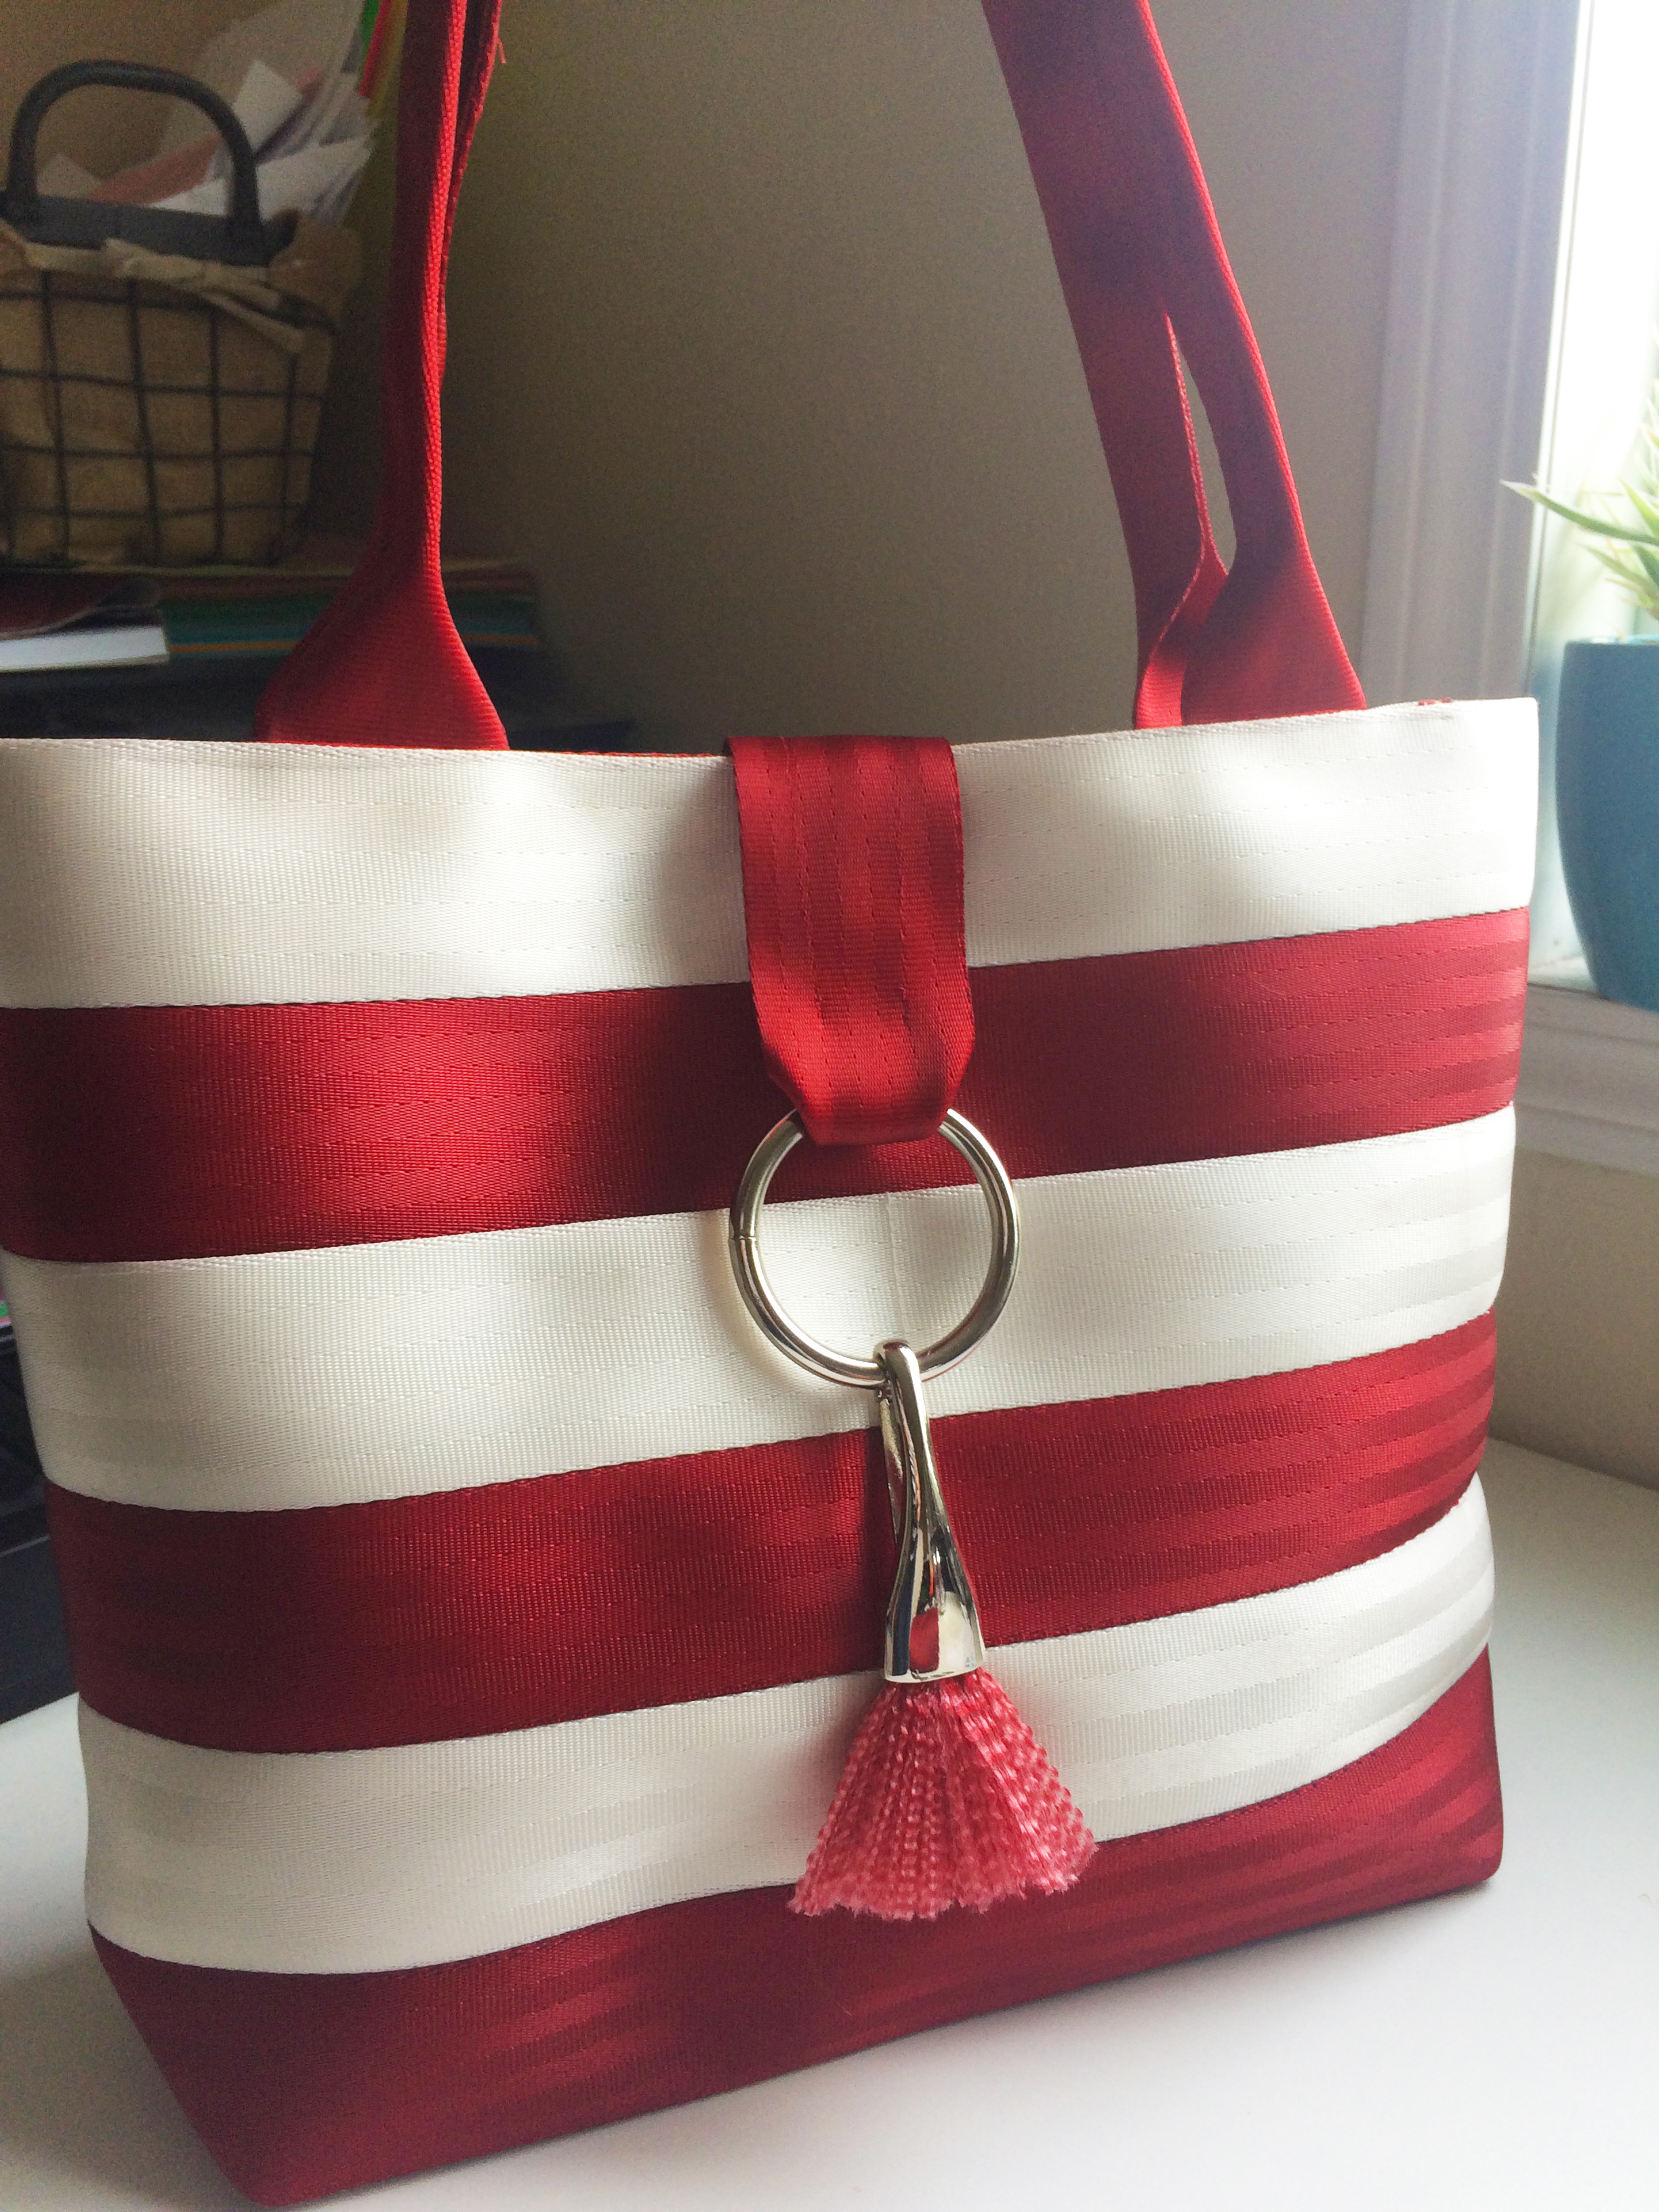 Add a seat belt tassel to your Market Tote!